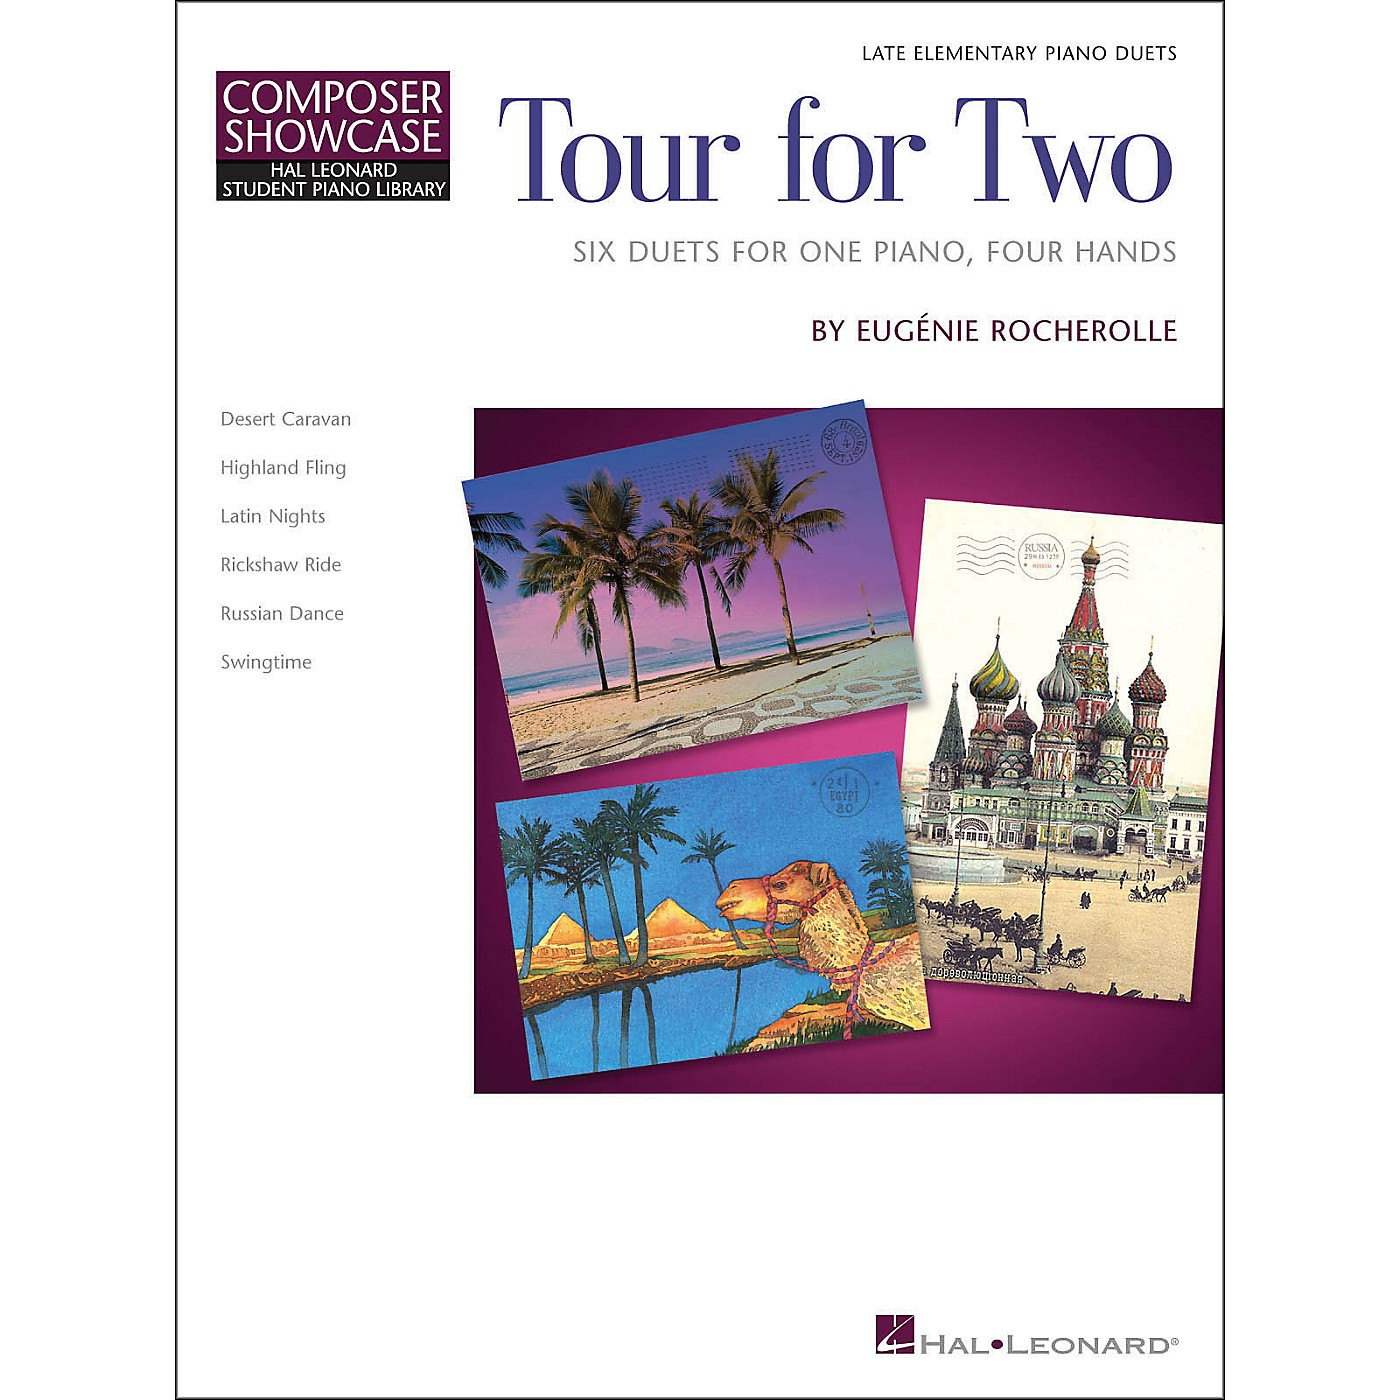 Hal Leonard Tour for Two - Six Duets for One Piano Four Hands - HLSPL Composer Showcase-Late Elementary thumbnail